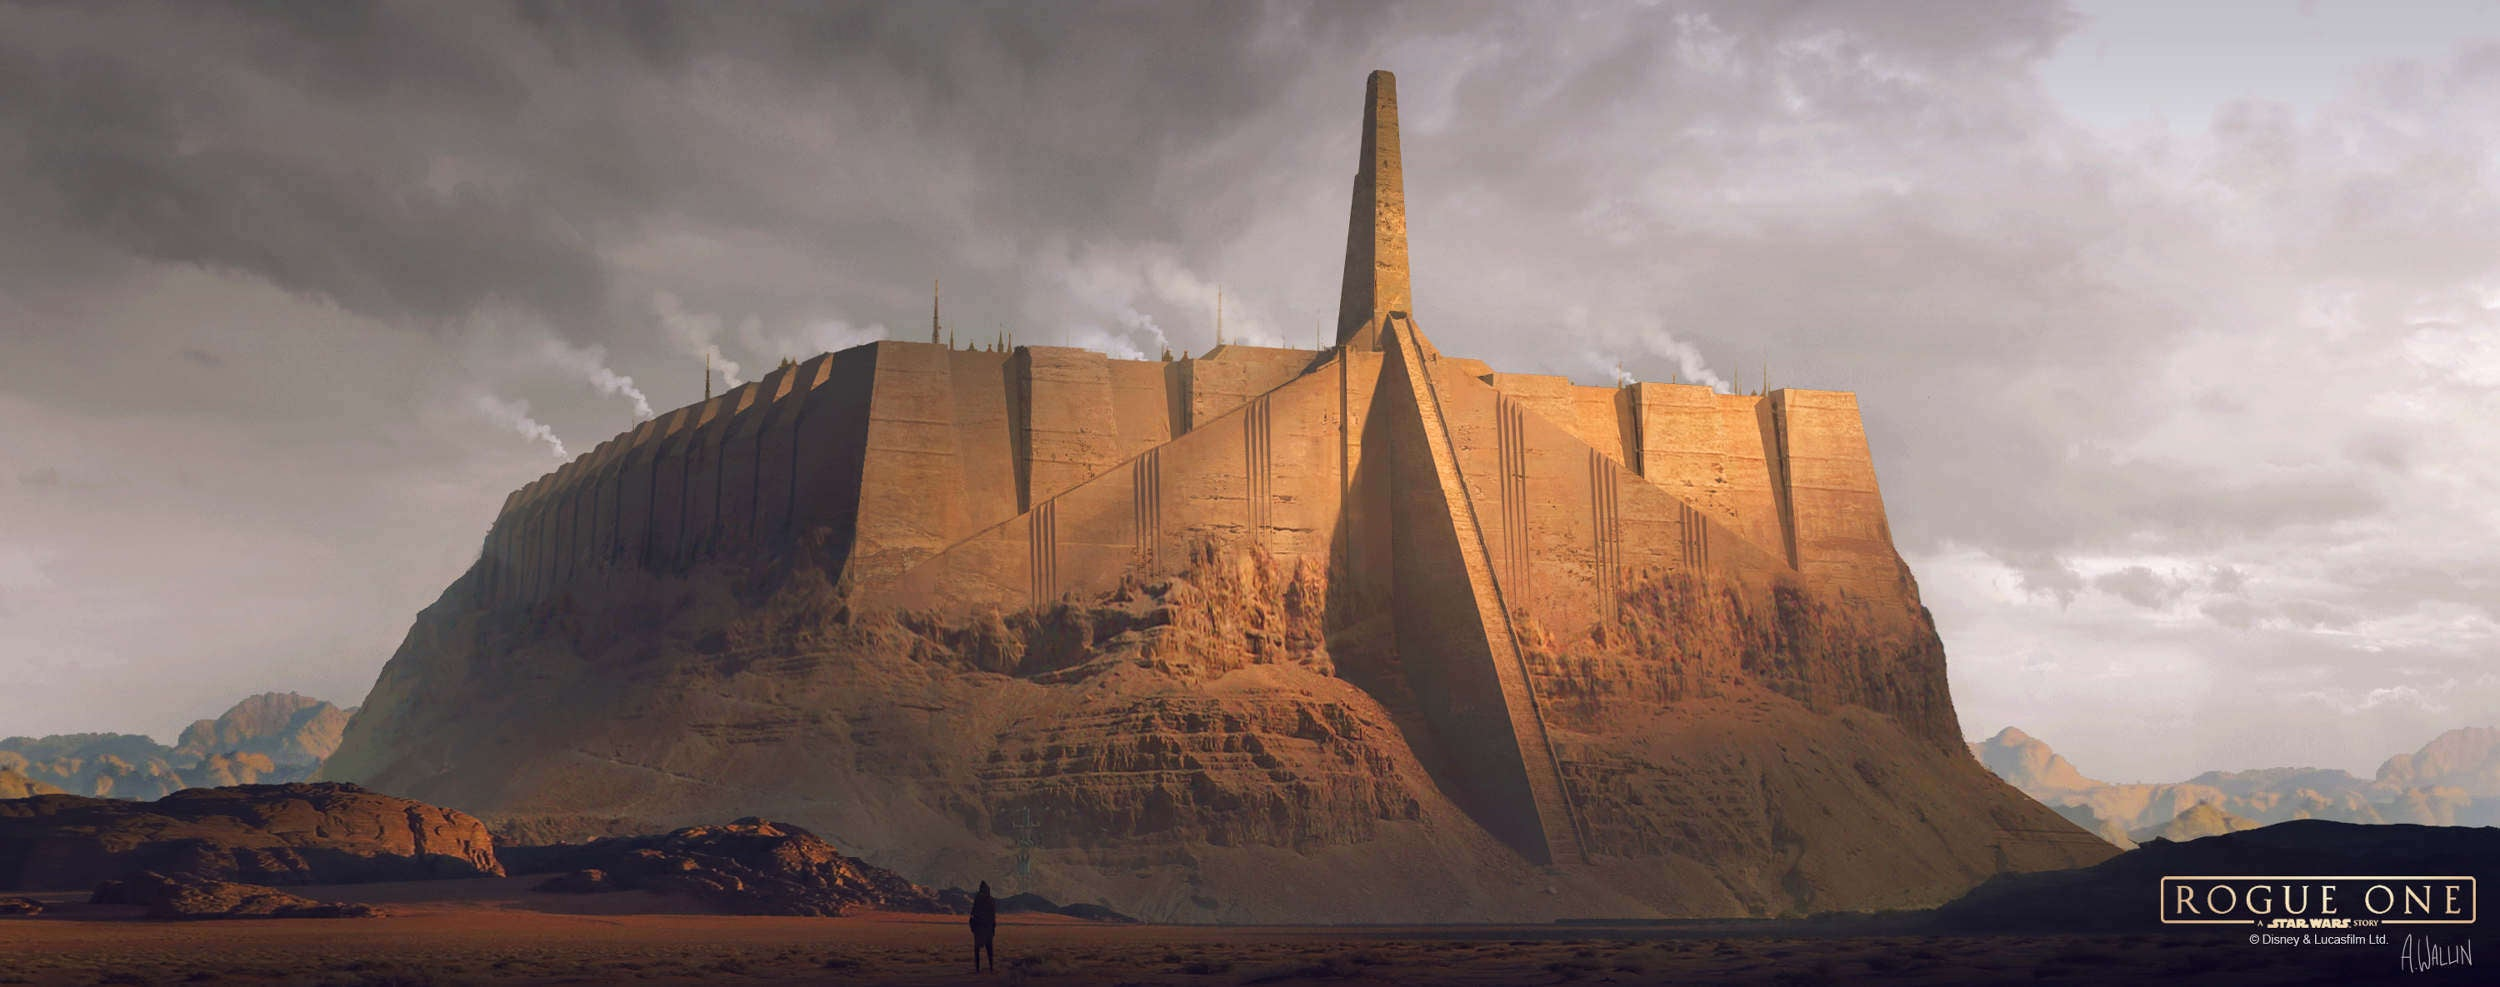 rogue-one-concept-art-4_andree-wallin_2500_c